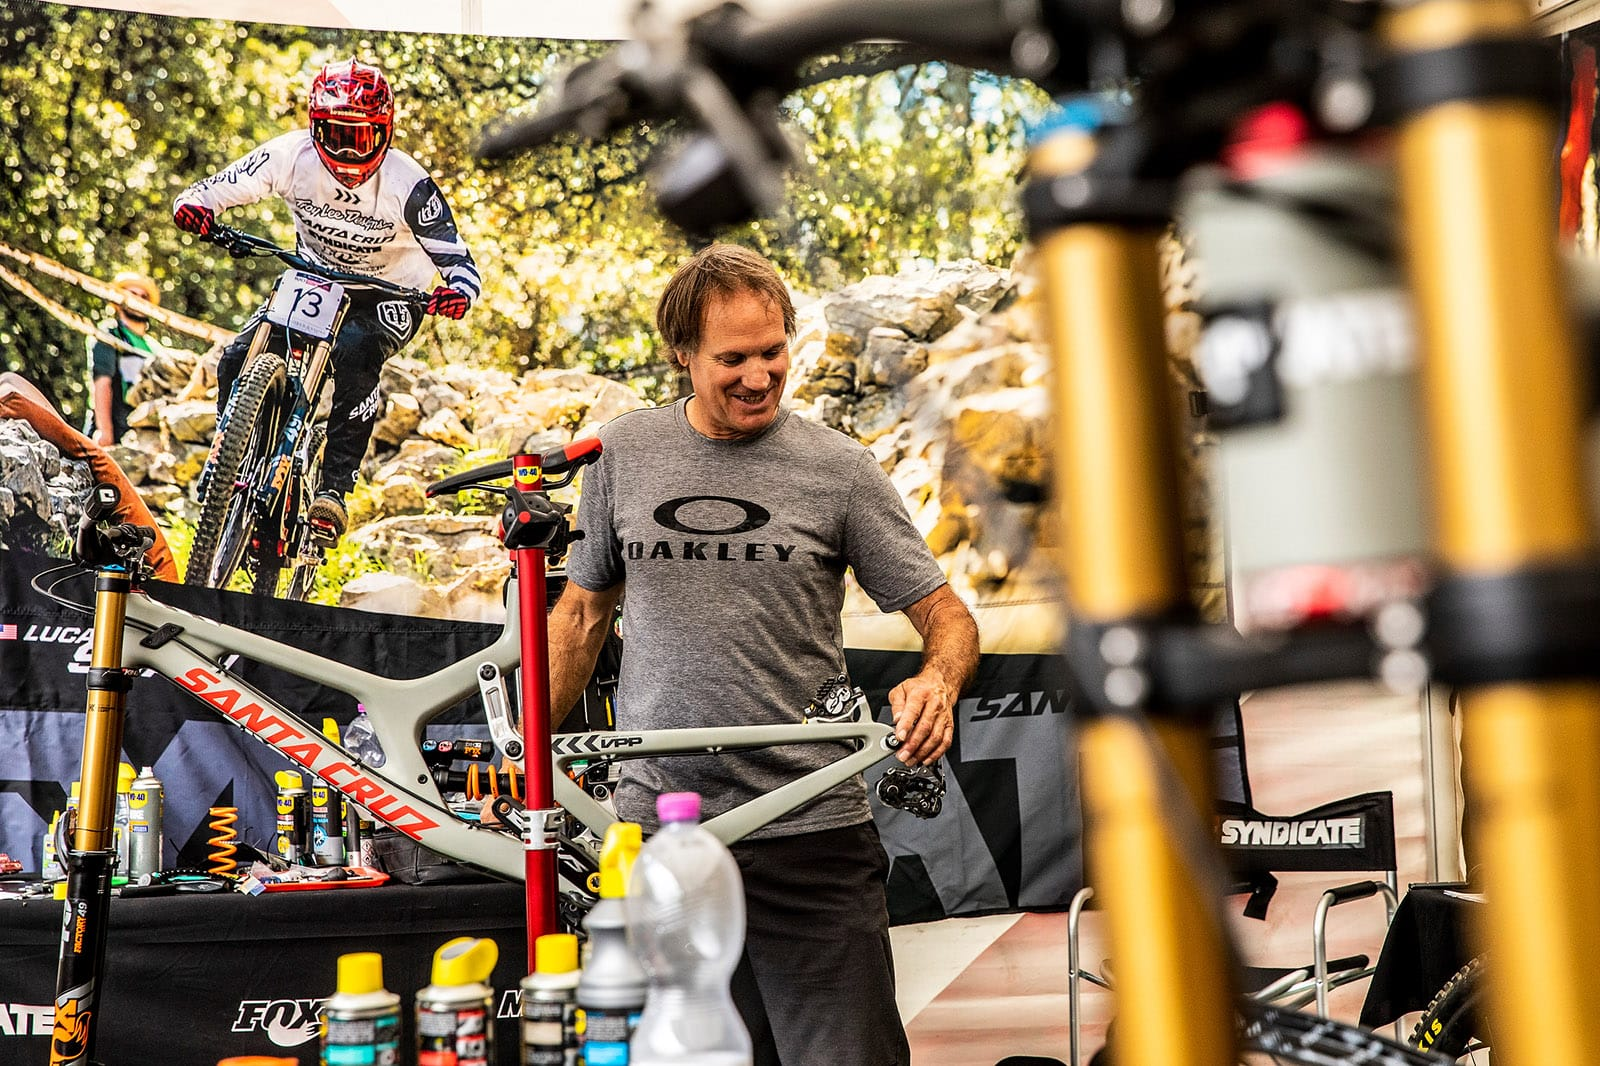 Santa Cruz Bicycles - The Syndicate at Val di Sole World Cup DH - Dougy Fresh